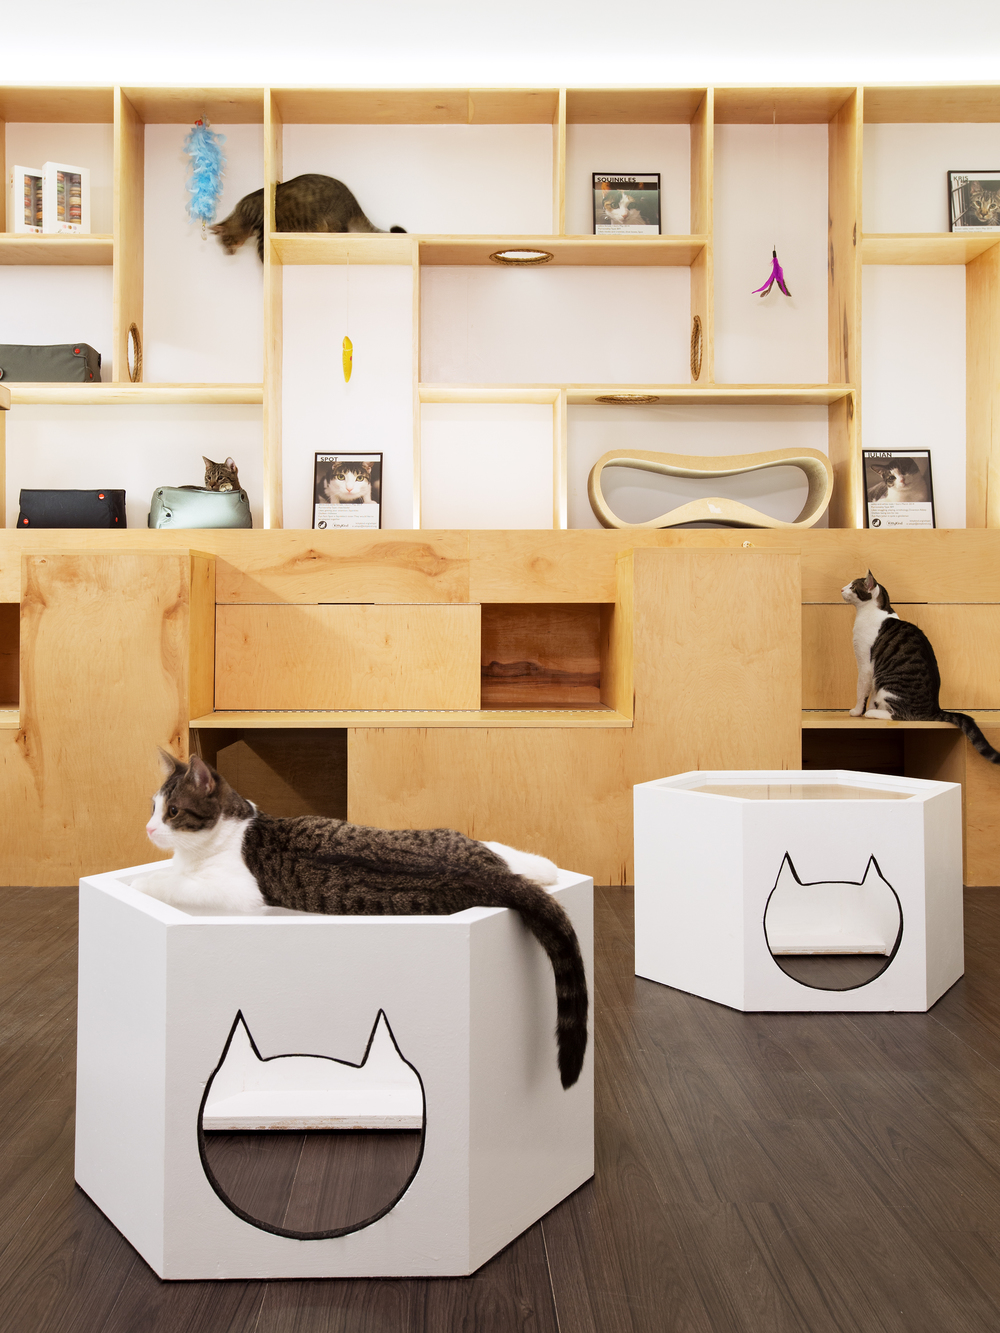 Sonya Lee Architect MeowParlour_Shelving detail.jpg